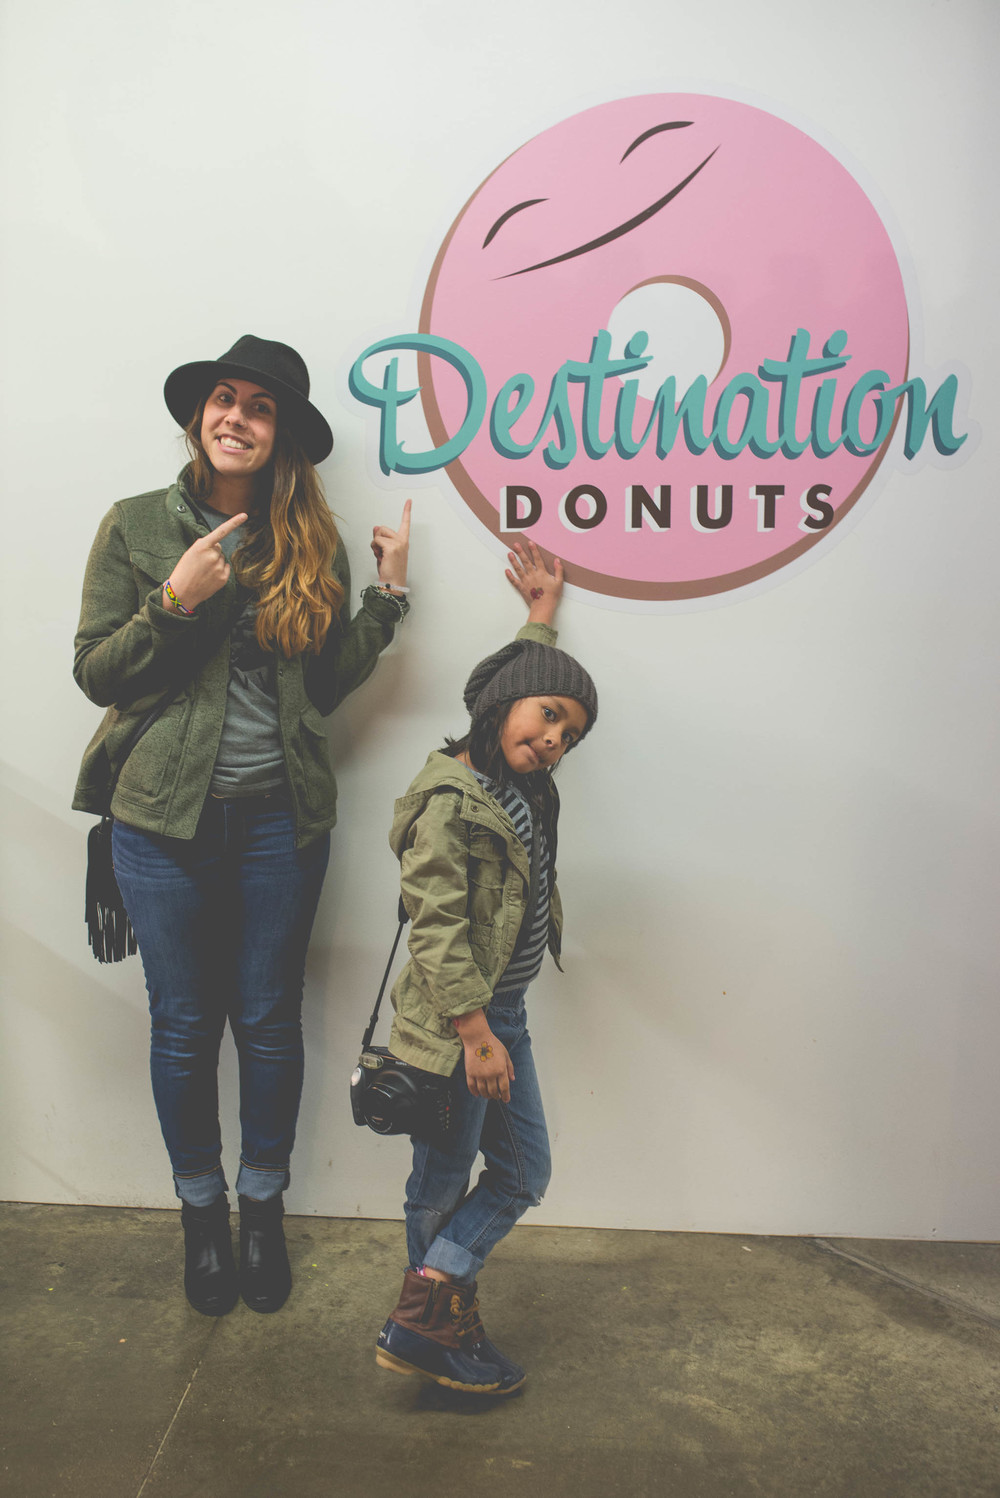 One of our favorite stops at the north market (Destination Donuts)...but they were closed when we got there this time!! NOOOOOOOO.